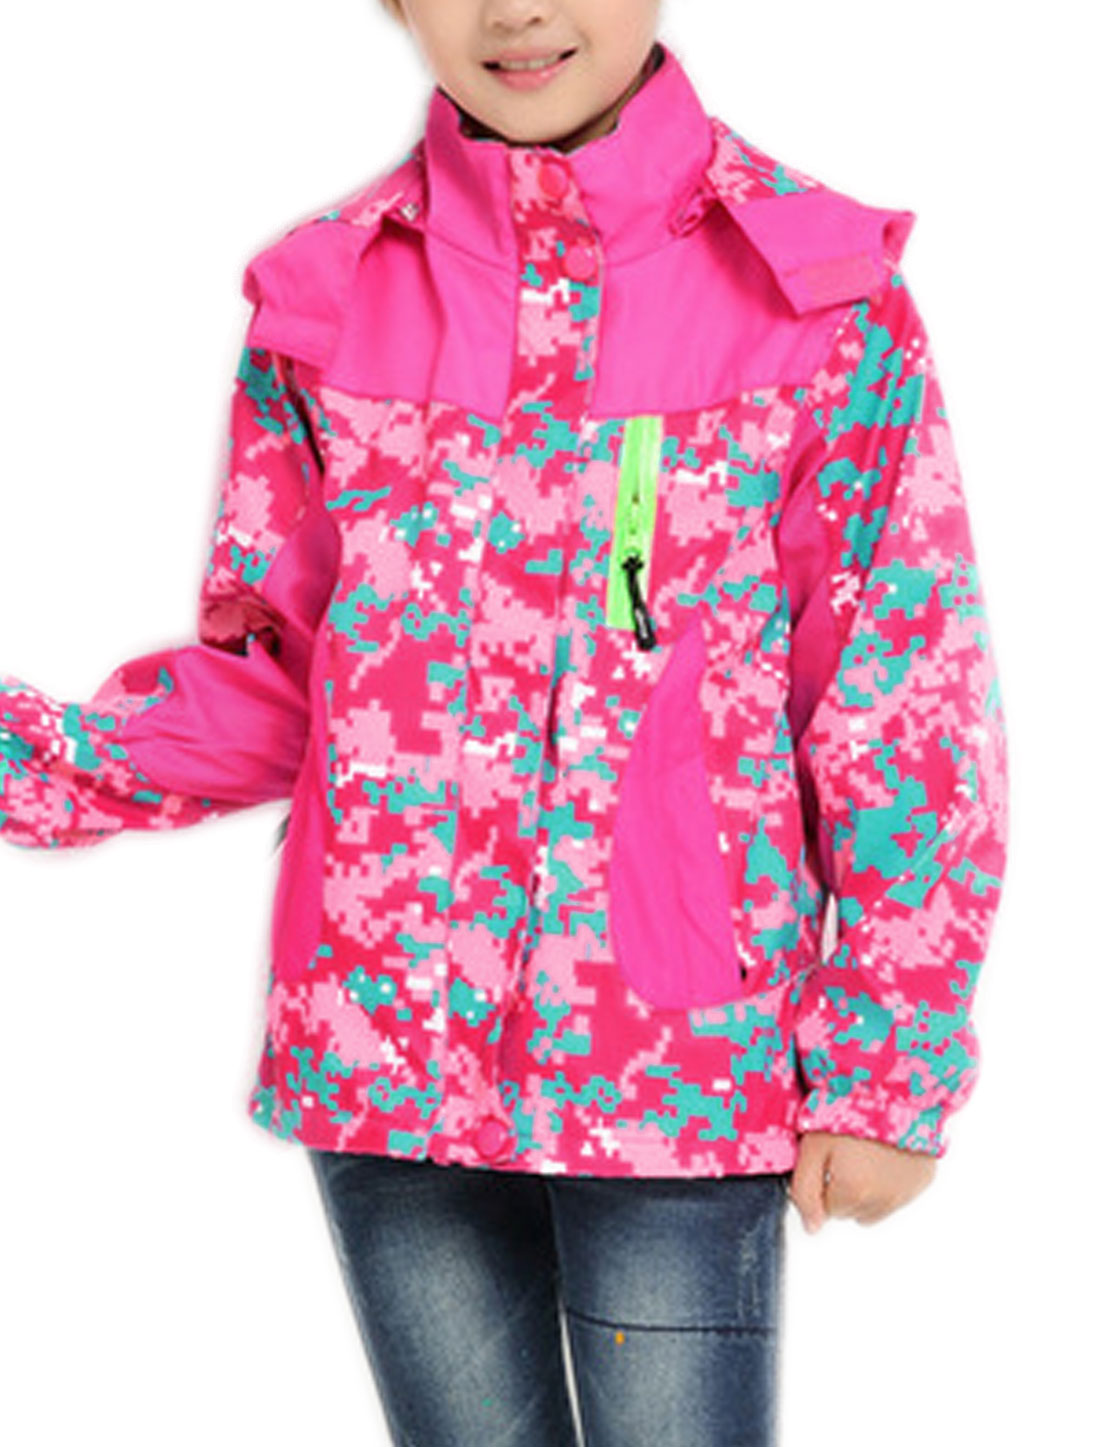 Girls Hooded Hidden Zipper Front Camouflage Print Jacket Fuchsia 12